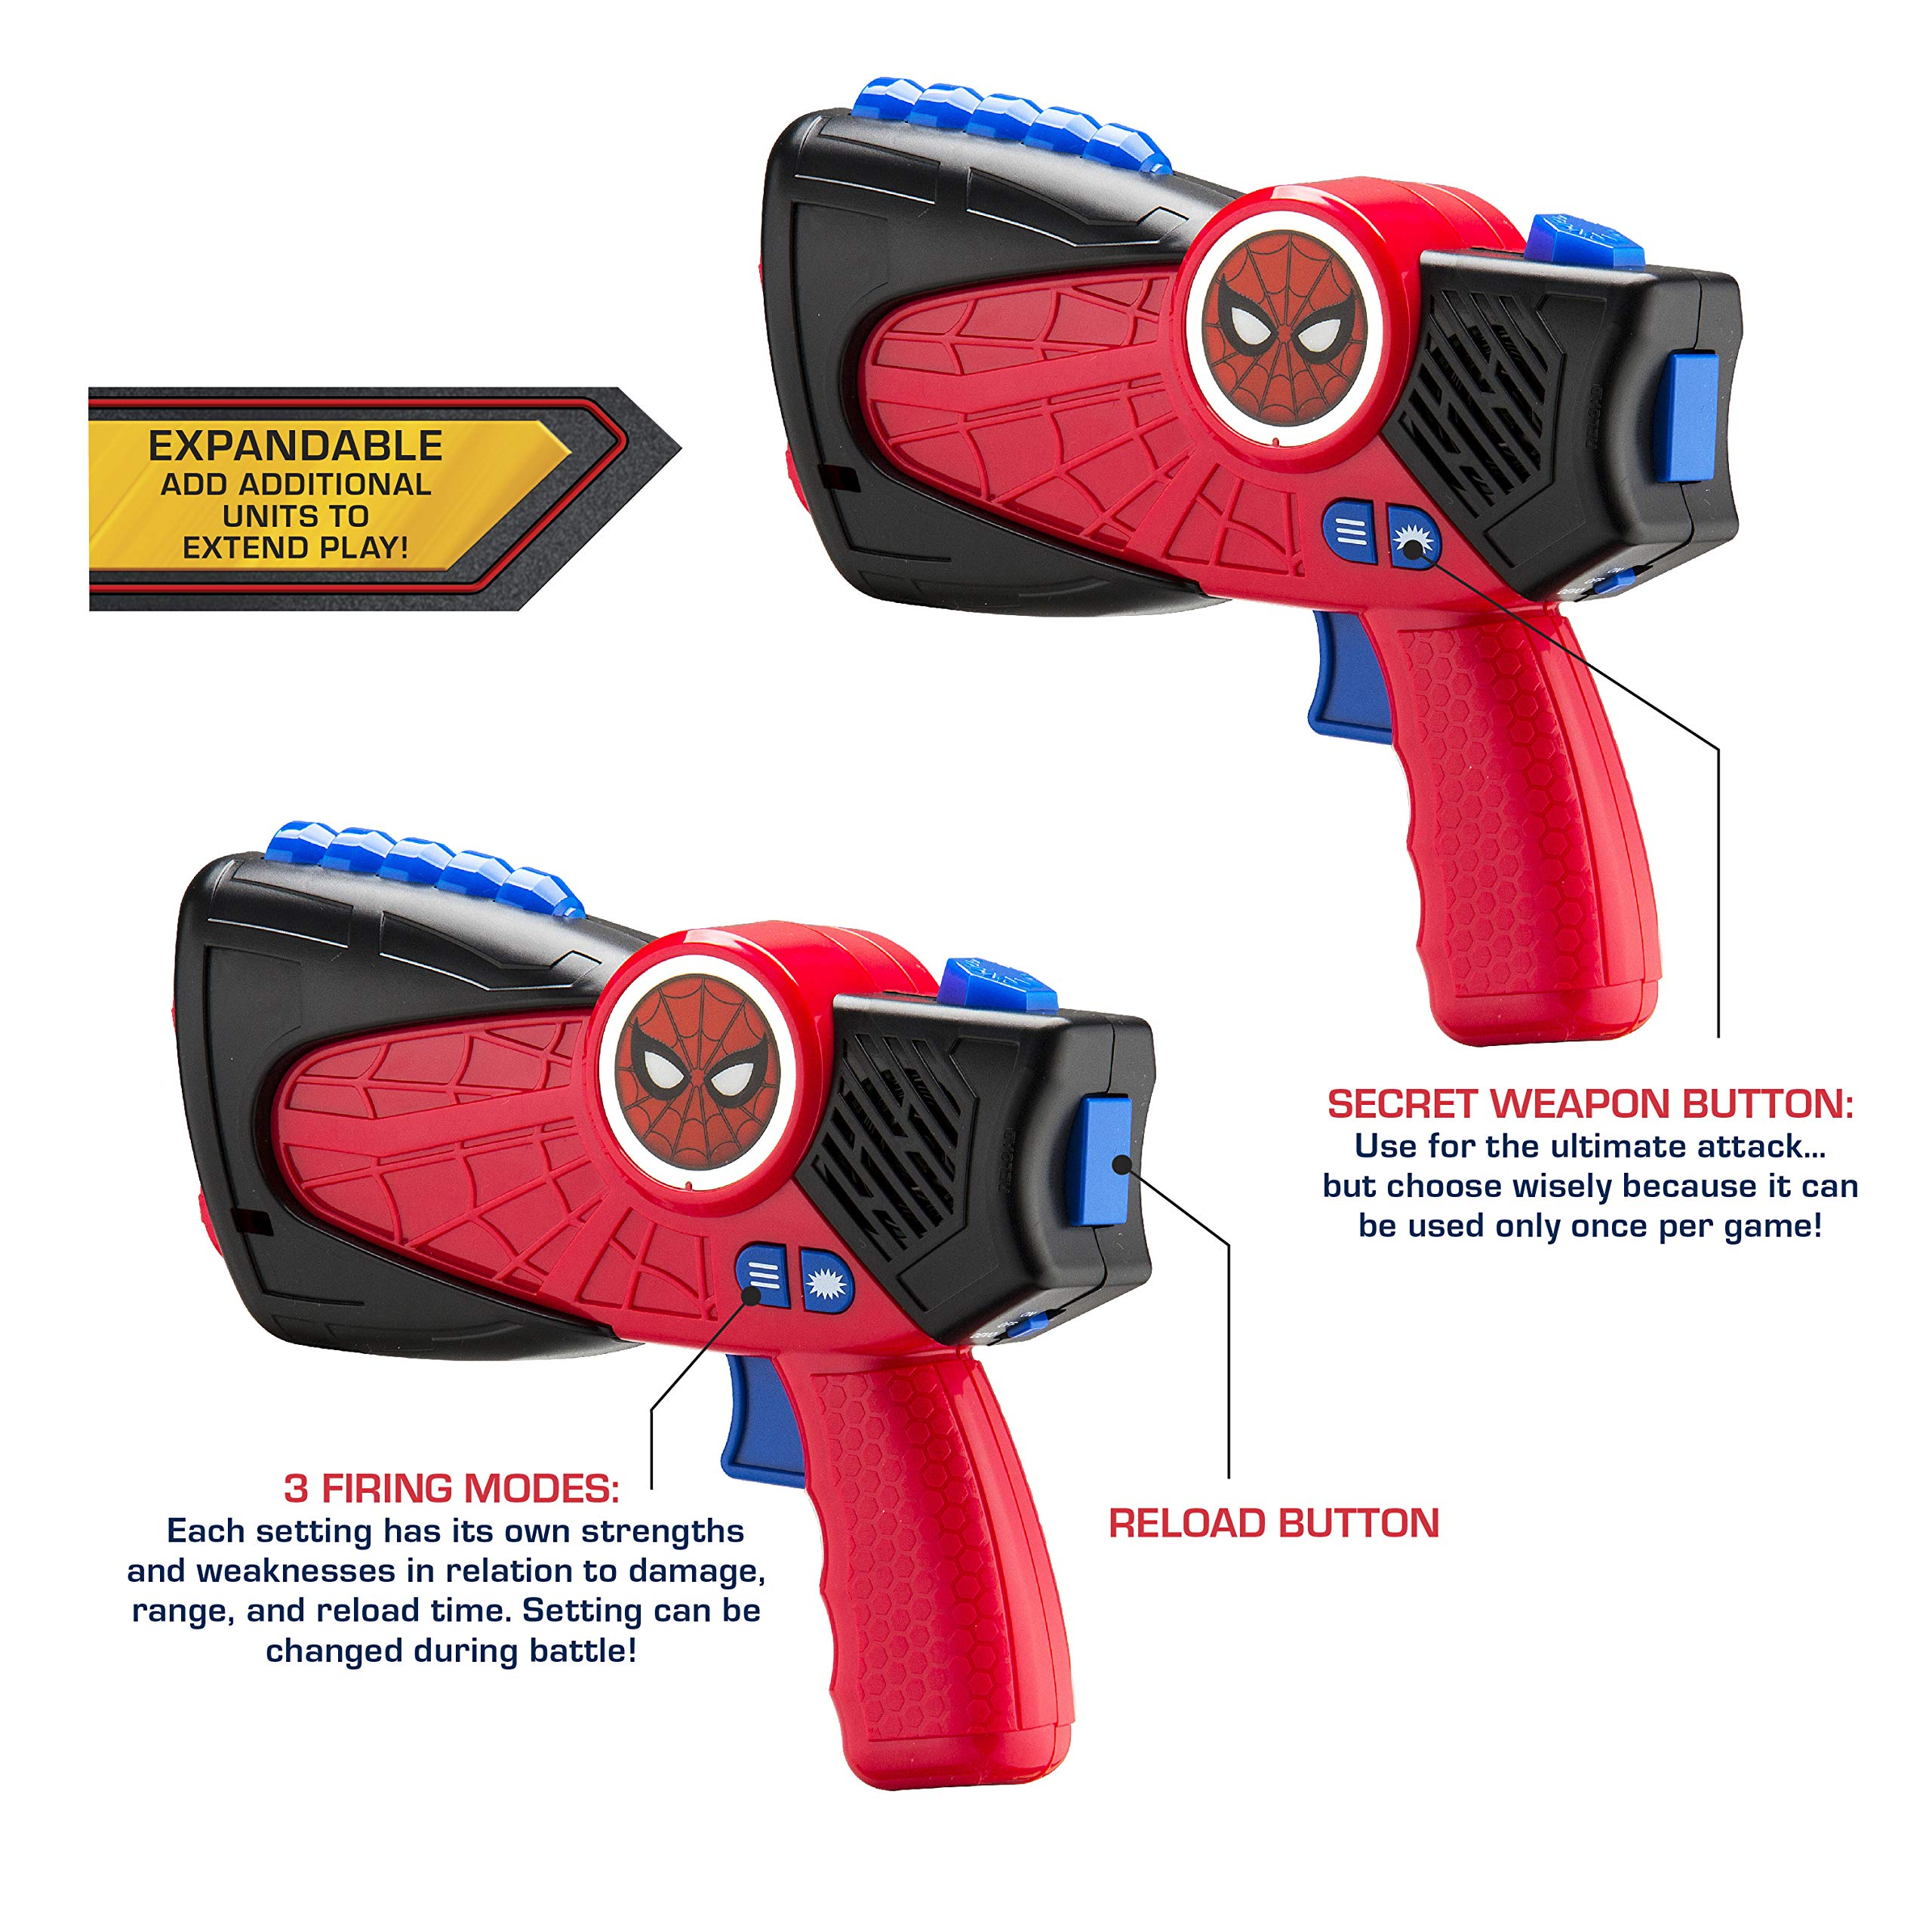 Spiderman Far from Home Laser-Tag for Kids Infared Lazer-Tag Blasters Lights Up & Vibrates When Hit by eKids (Image #3)